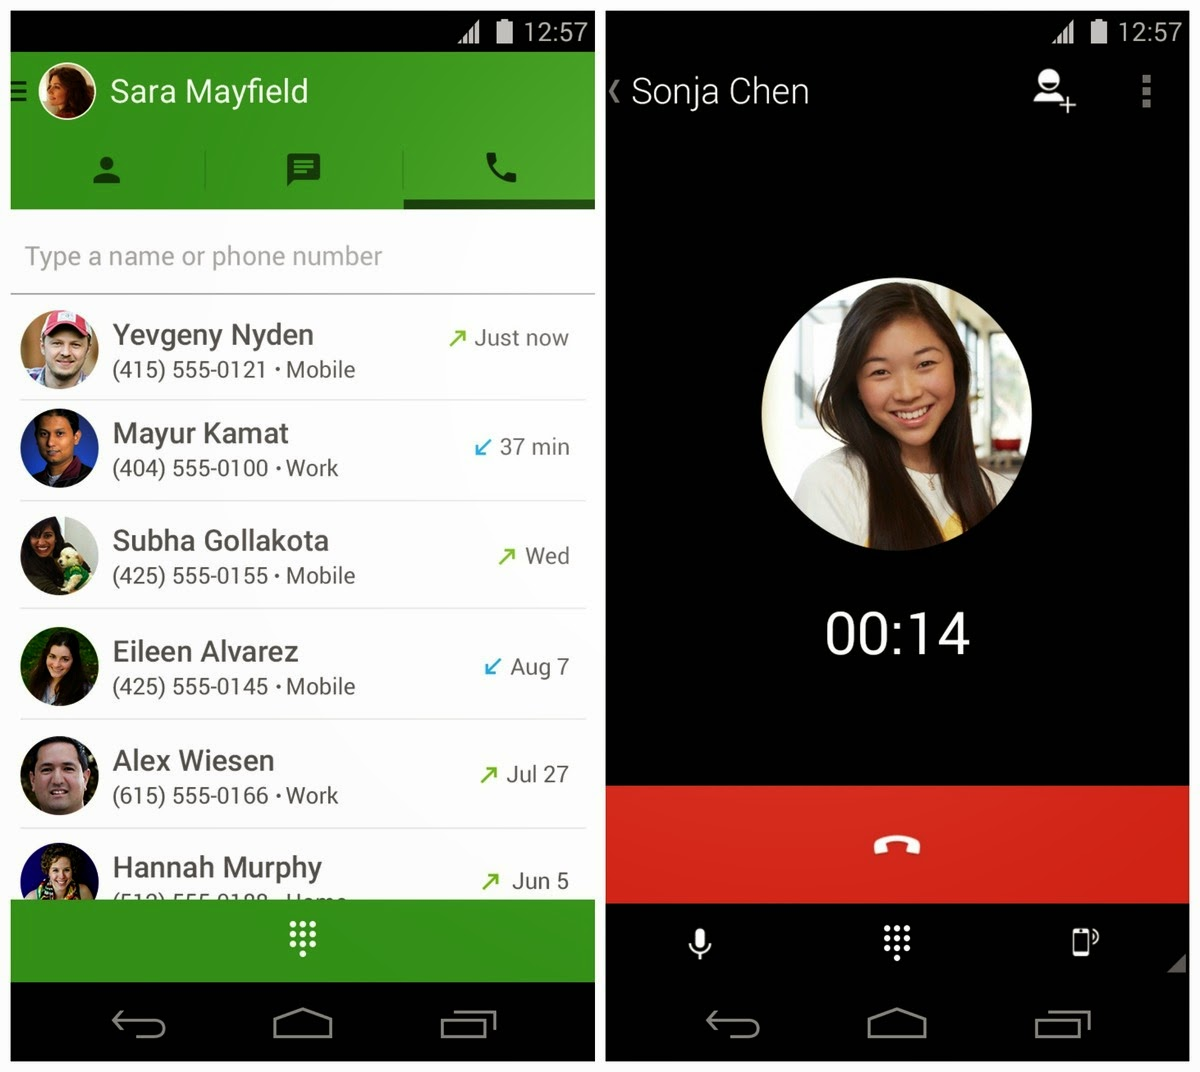 Free Voice Call Is Now Possible Over Google Hangout App | Mono-live